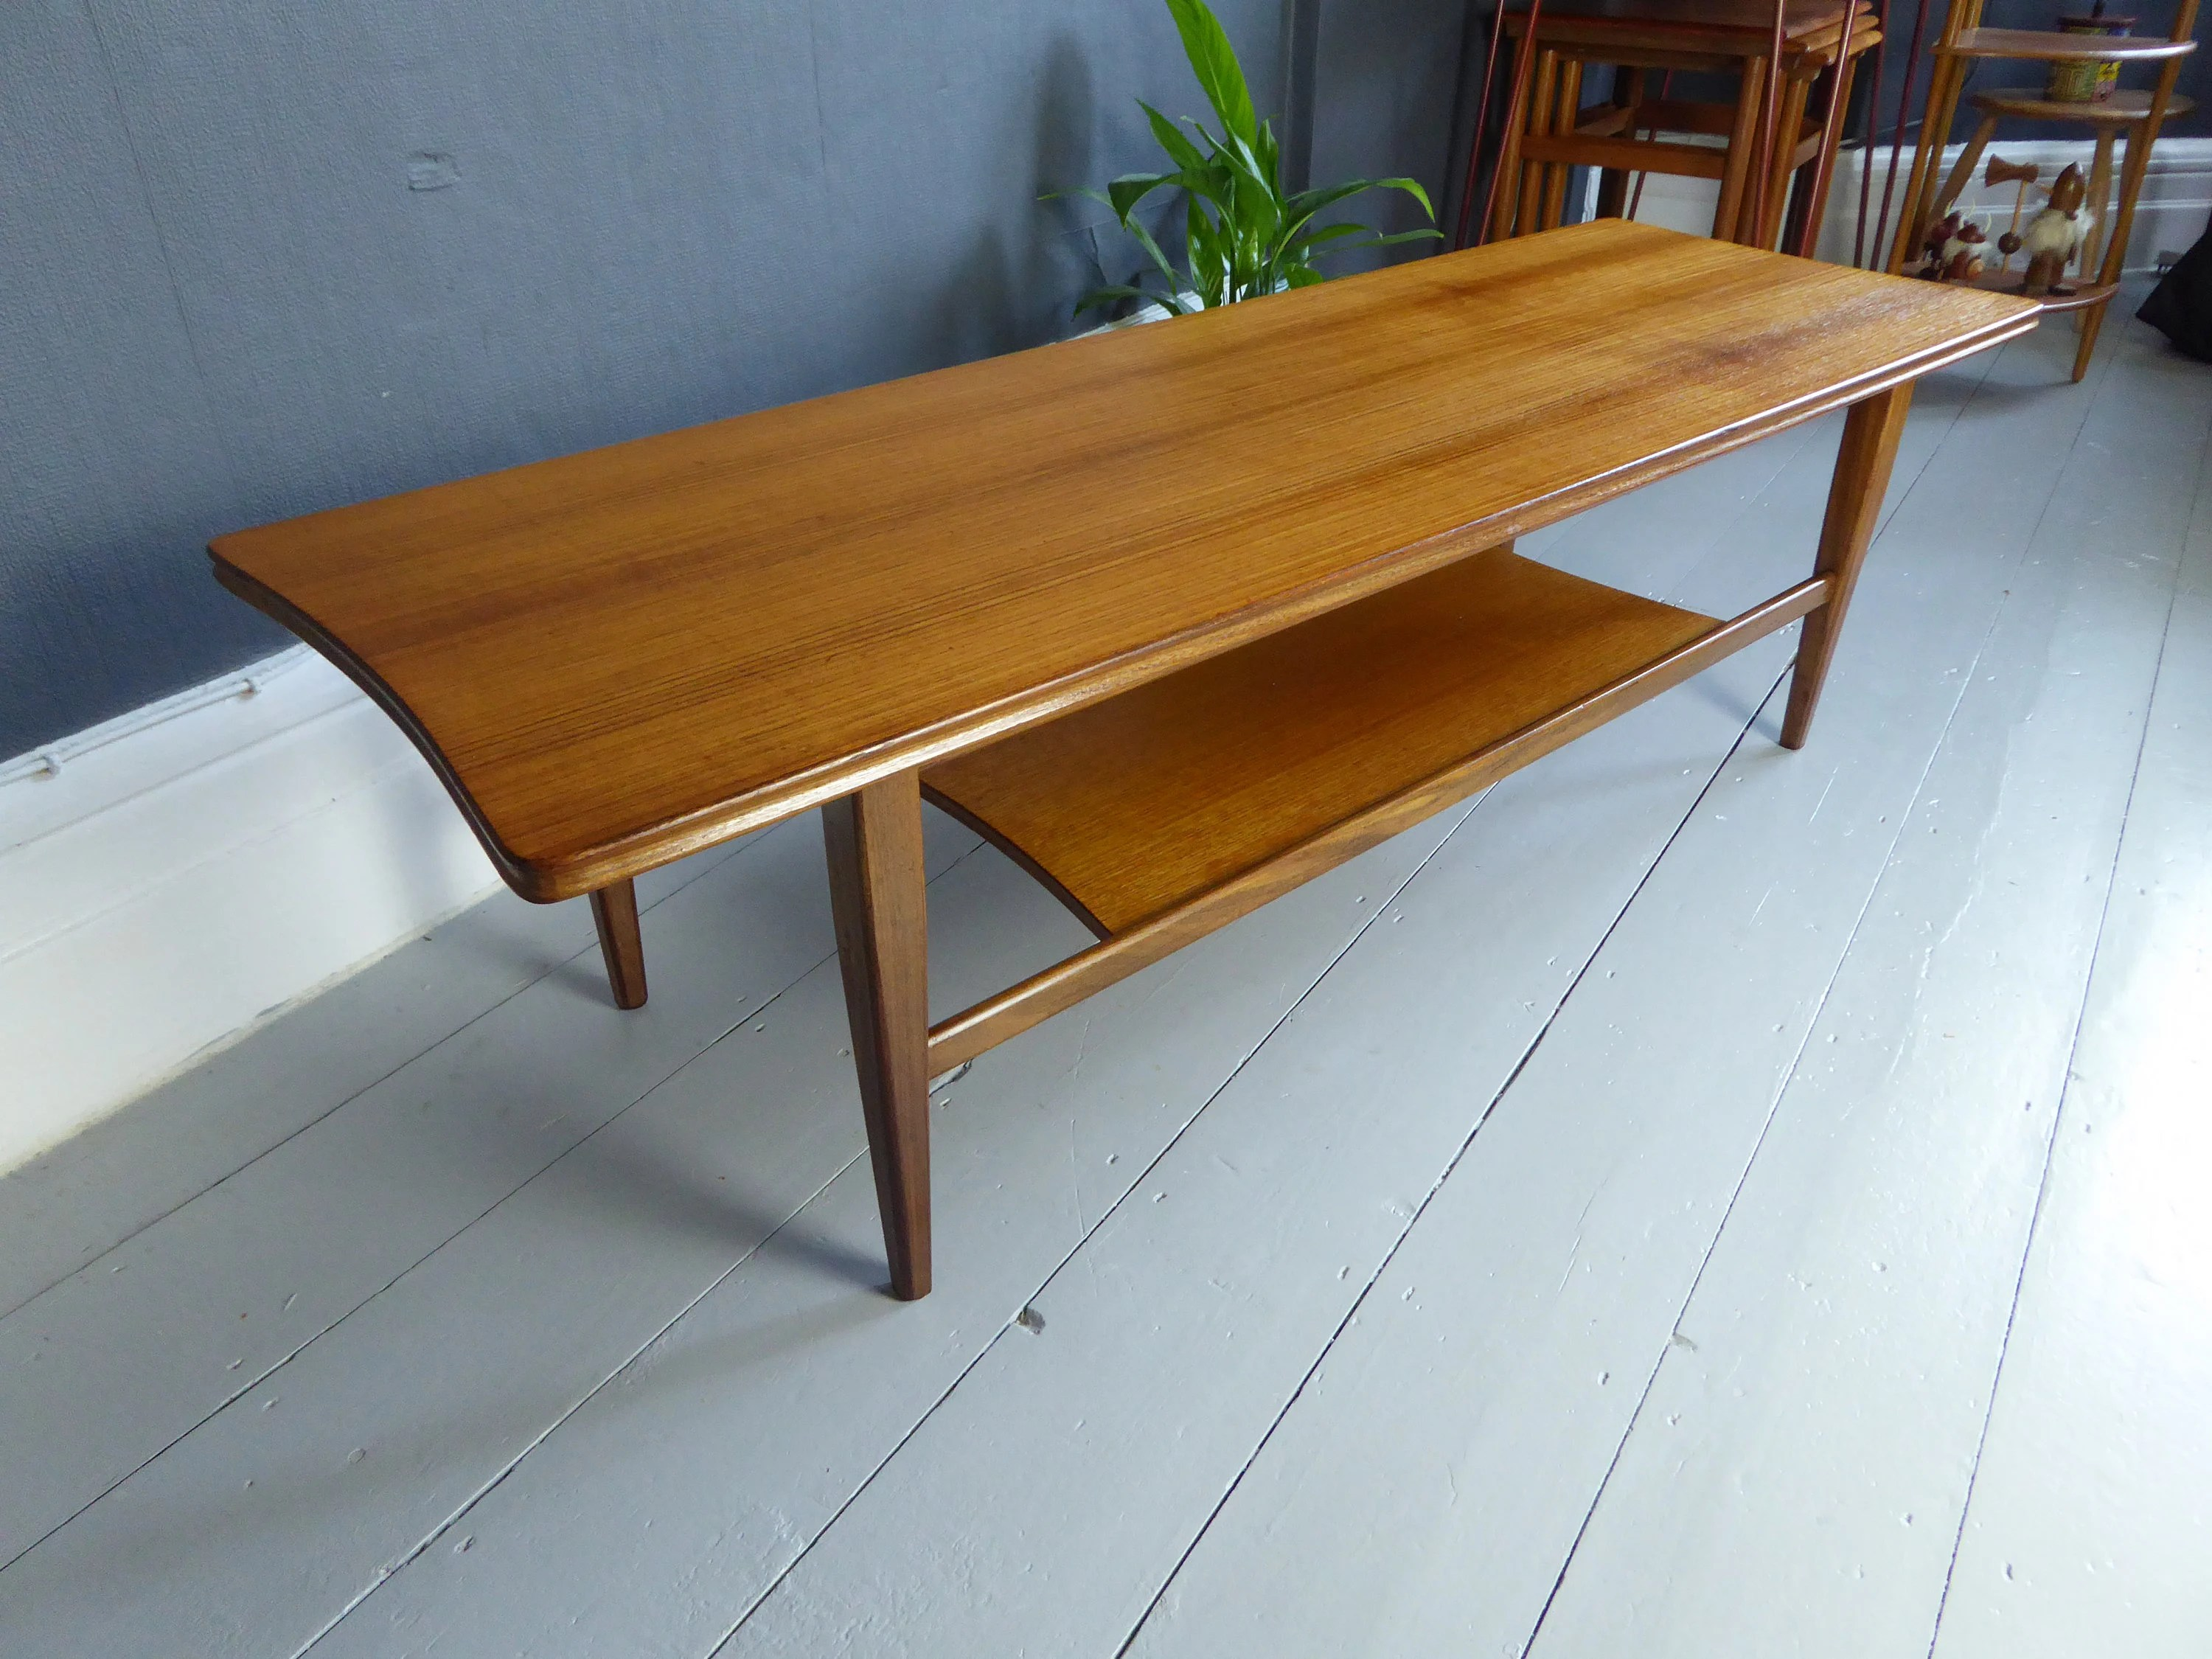 Couchtisch Hornby Vintage Retro Mid Century Richard Hornby For Heals Teak Surfboard Coffee Table Price Reduced